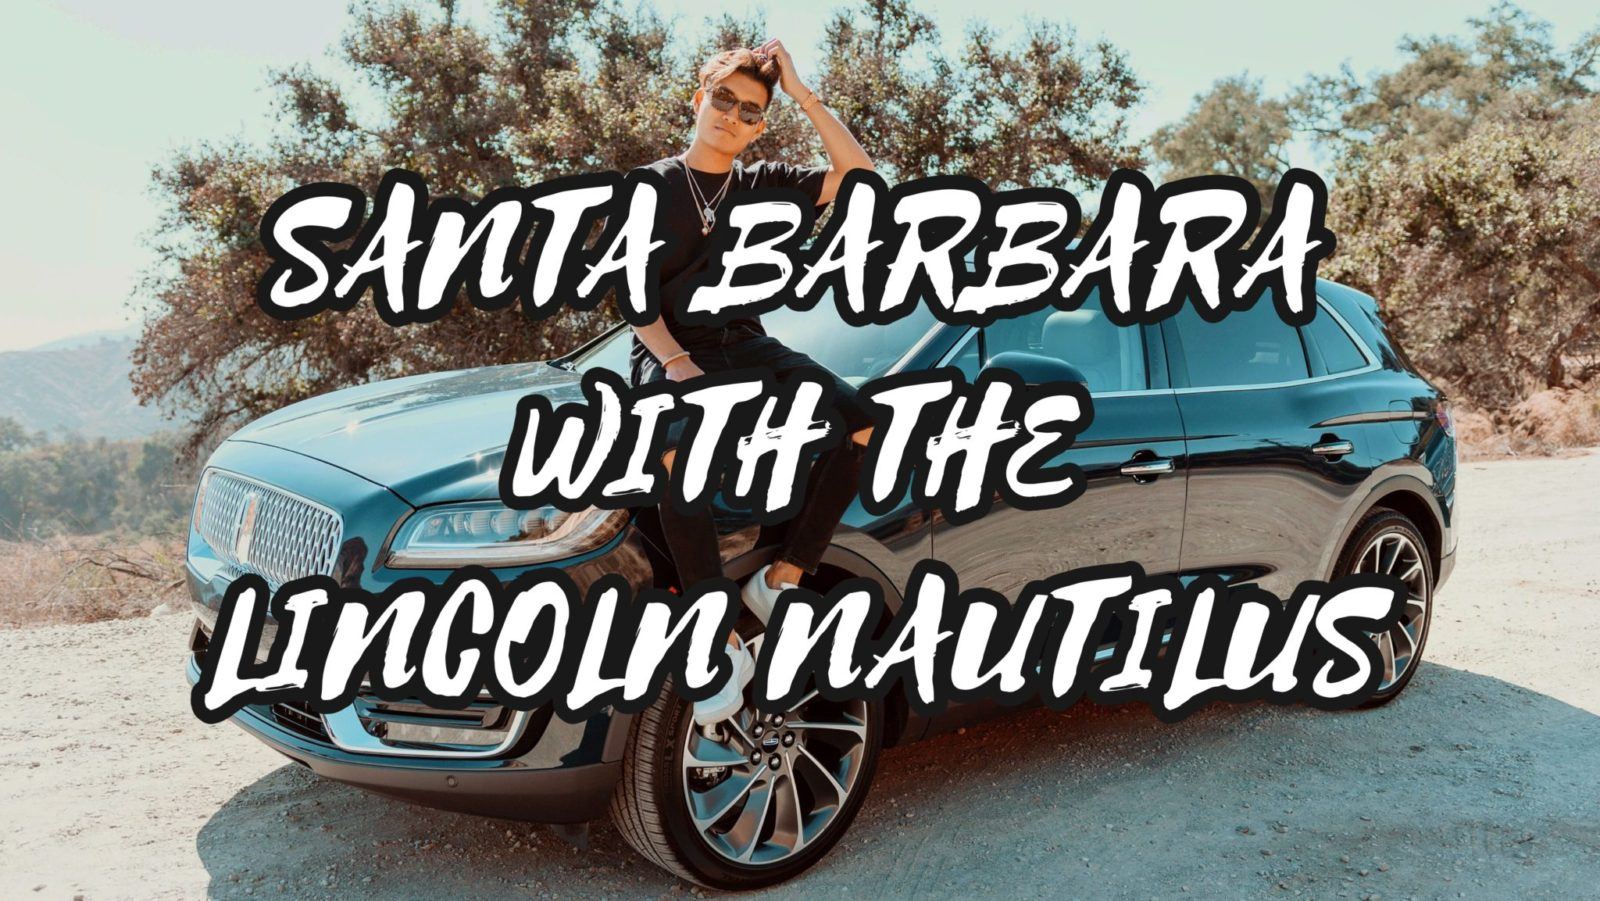 TRAVEL DIARY: SANTA BARBARA WITH THE LINCOLN NAUTILUS